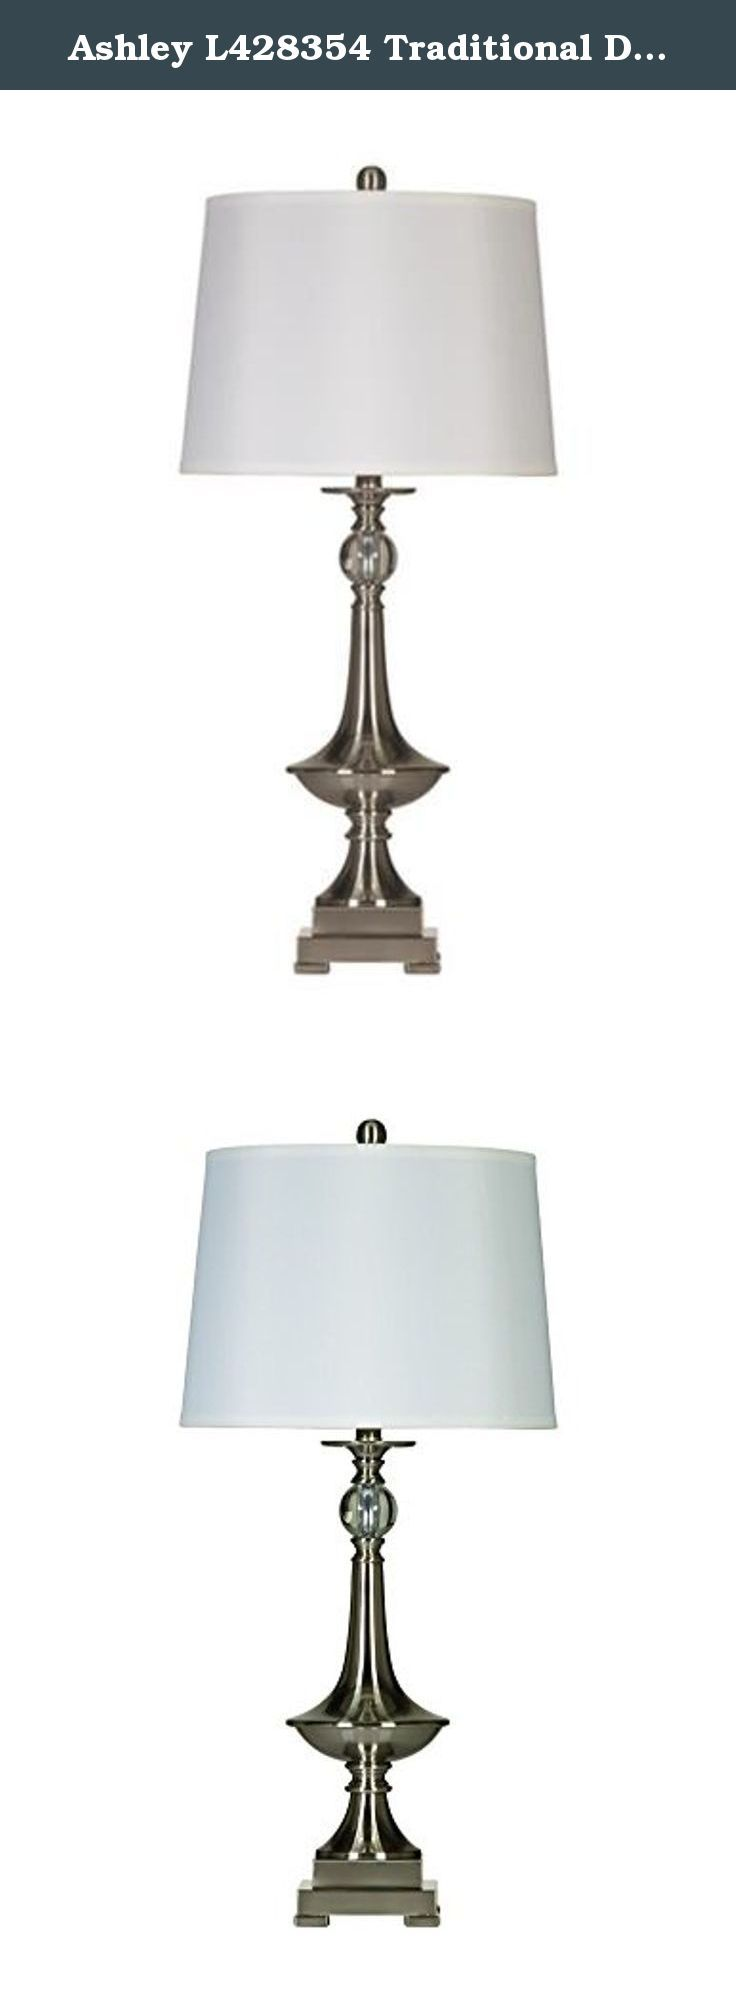 Ashley L428354 Traditional Desk Lamp in Brushed Nickel Finish (Pack of 2). Set of 2 Table Lamps in Brushed nickel finished metal. Dimensions: 15-Inch W x 15-Inch D x 32.75-Inch H, Shade: 13-Inch x 15-Inch x 11-Inch.